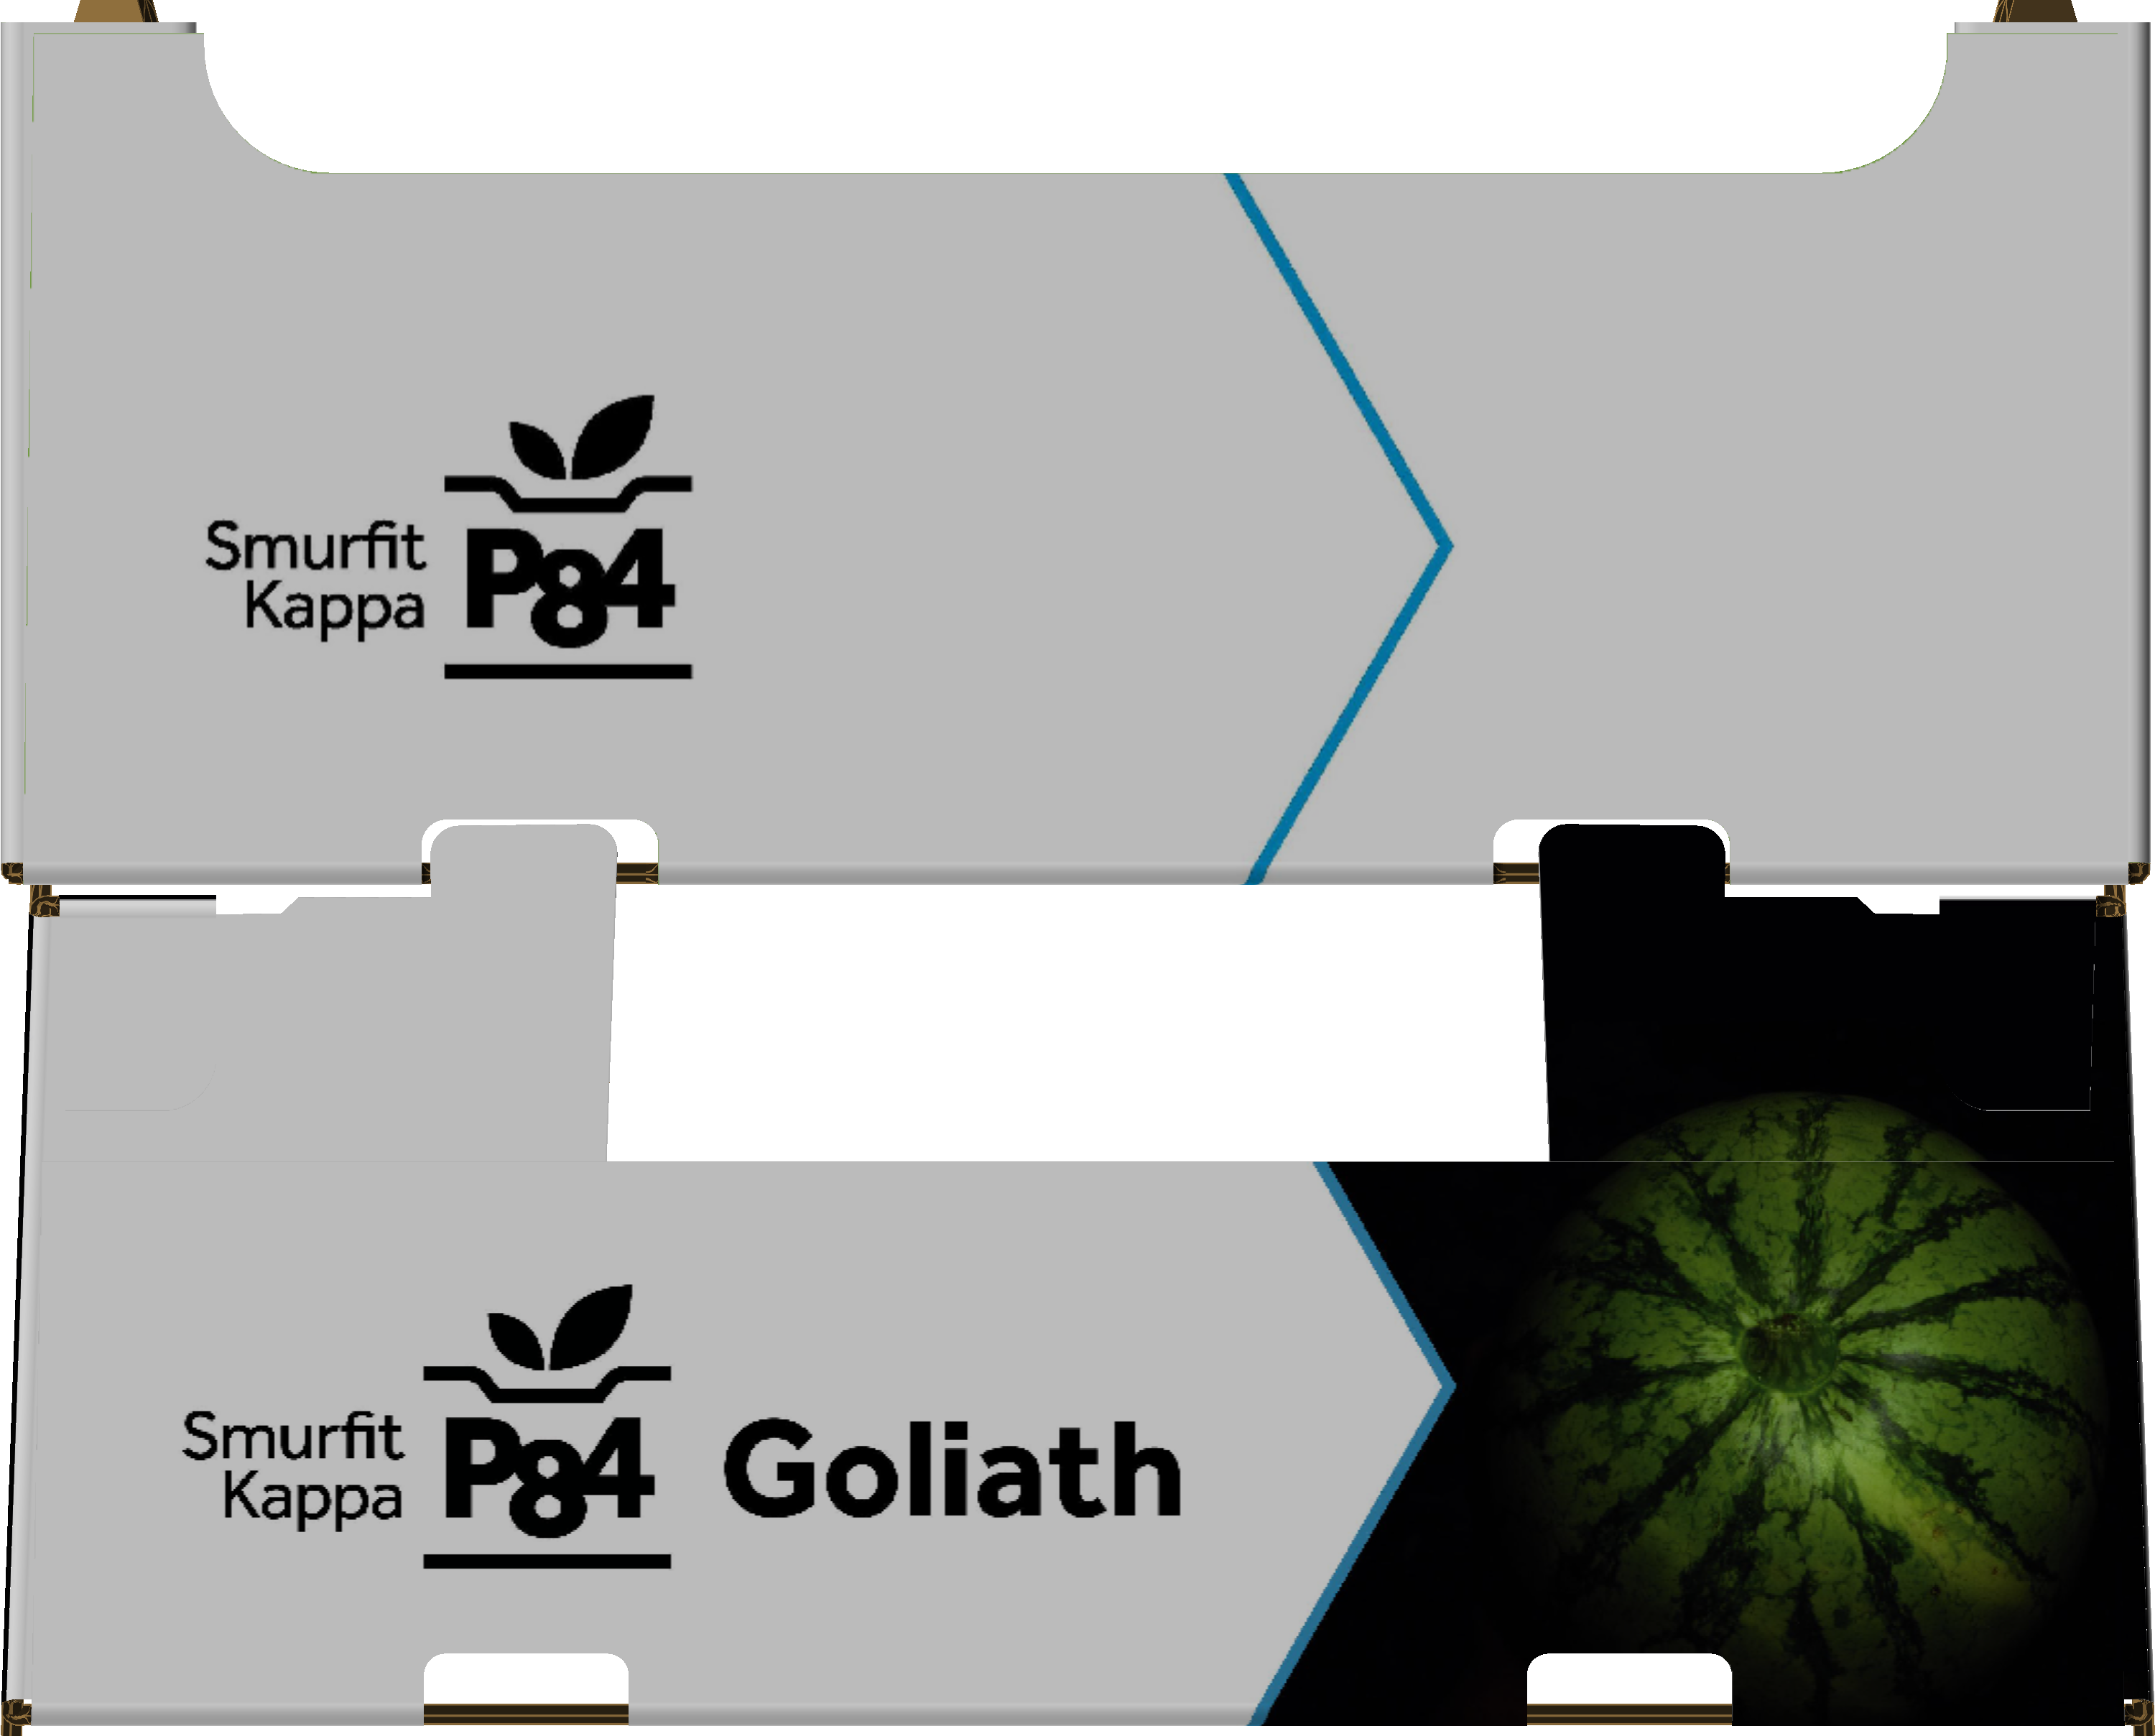 Goliath; the success of the new watermelon box with 1 million units sold